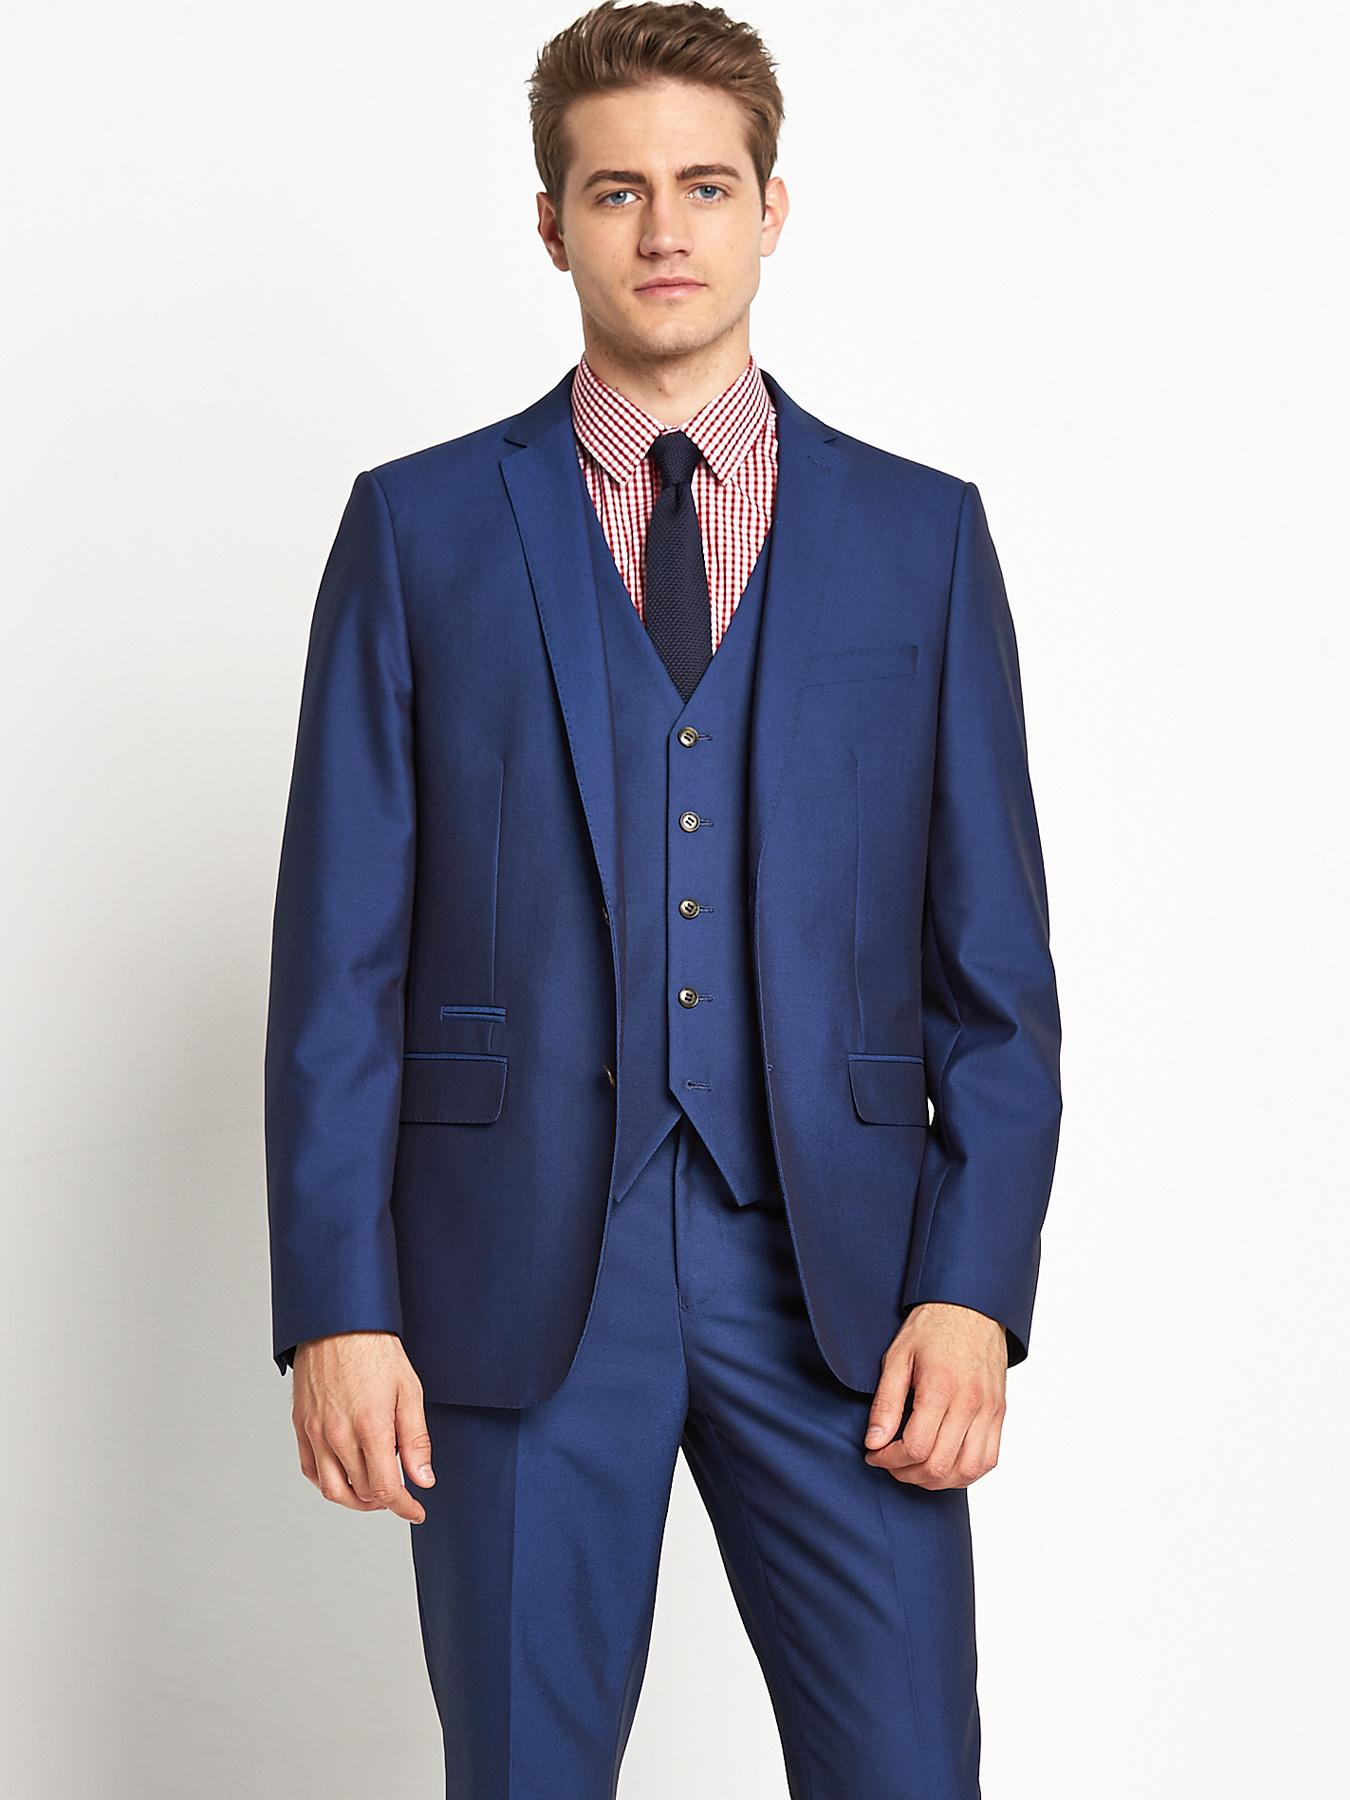 Mens Peak Lapel SB3 Tonic Suit Jacket, Blue